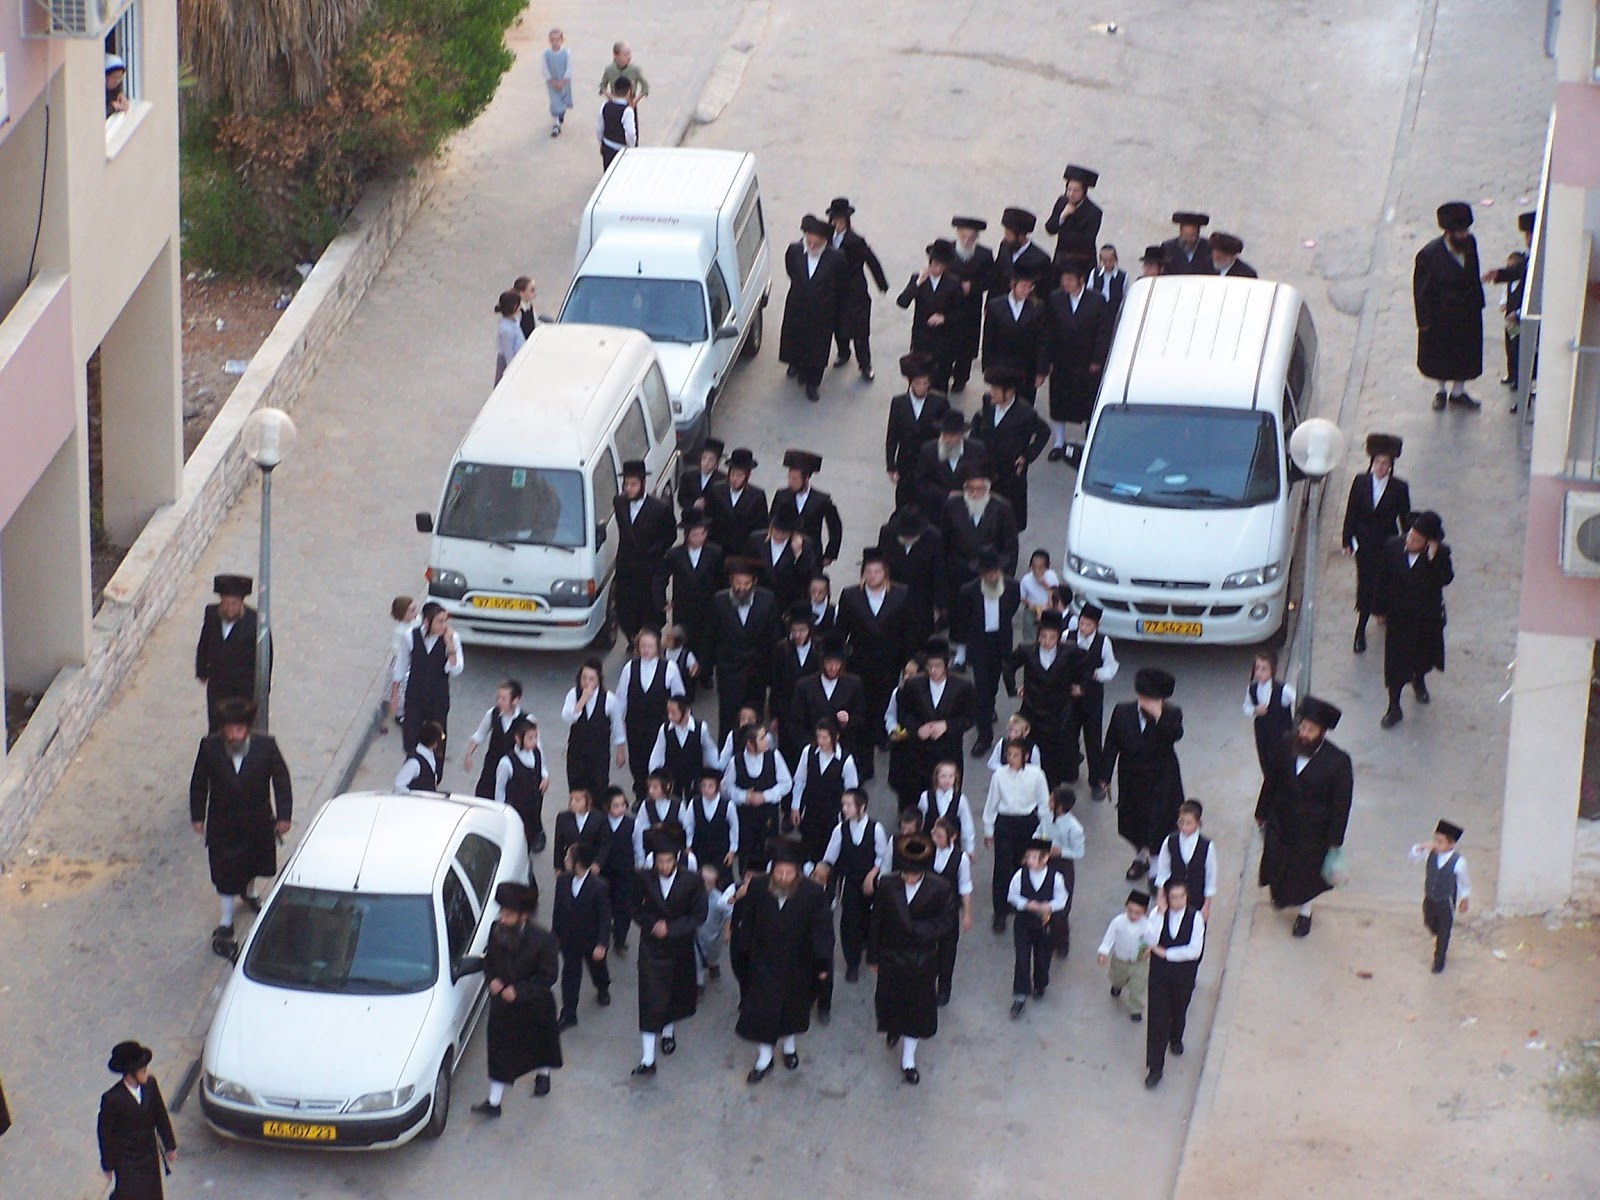 Haredi Jews In Israel: Prayer As Civil Disobedience: Lessons From Haredi Judaism